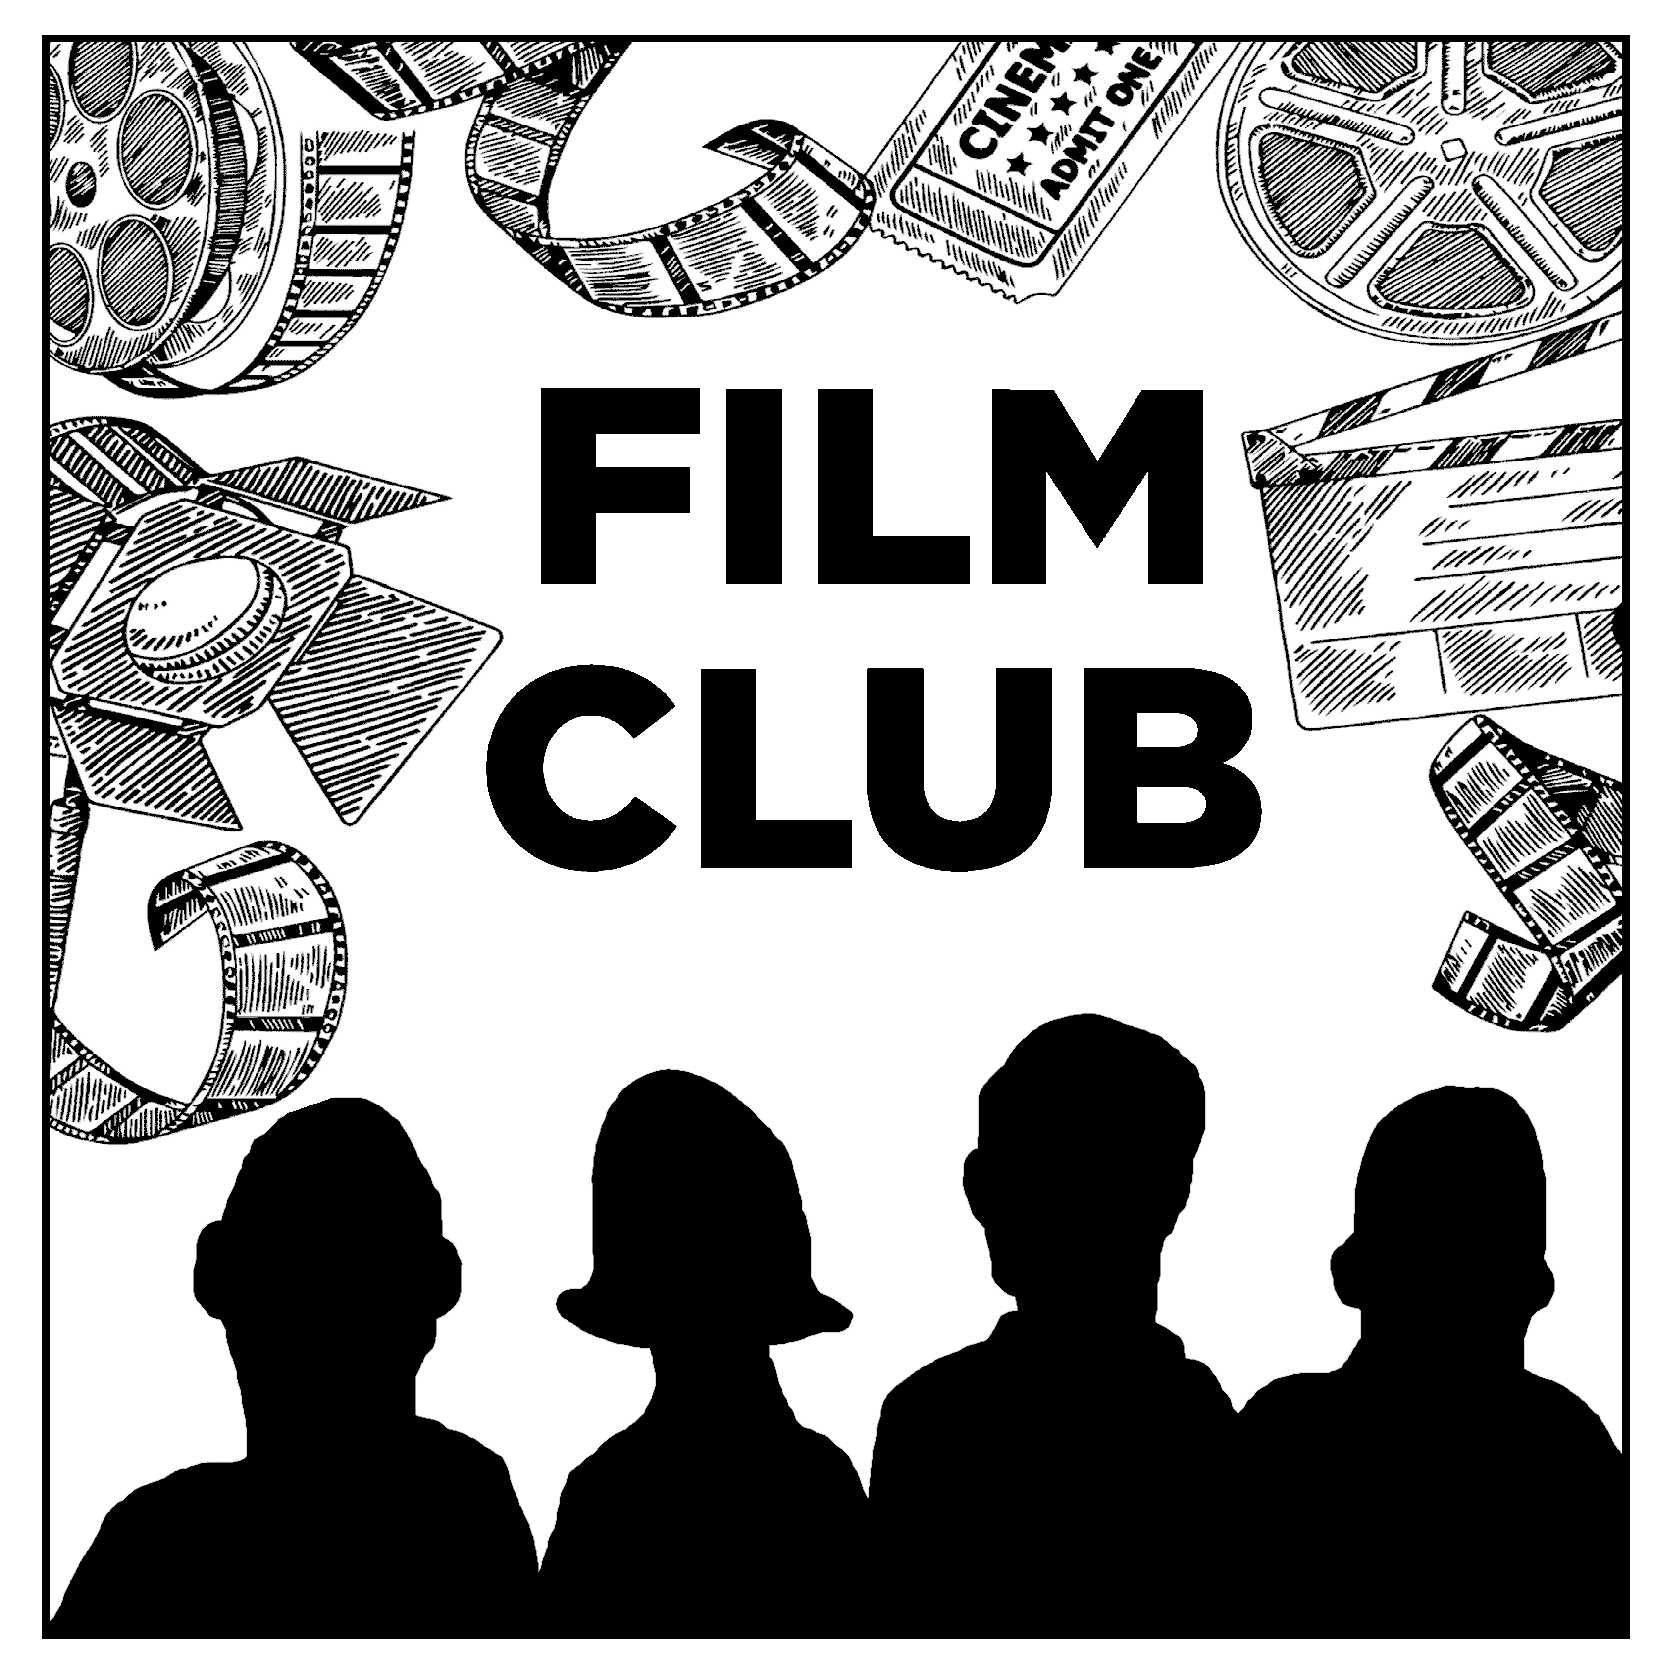 Monthly Film Club - Hosted every second Friday of the month, these film screenings are often topical, interesting and great way to meet other locals. Find out more here.